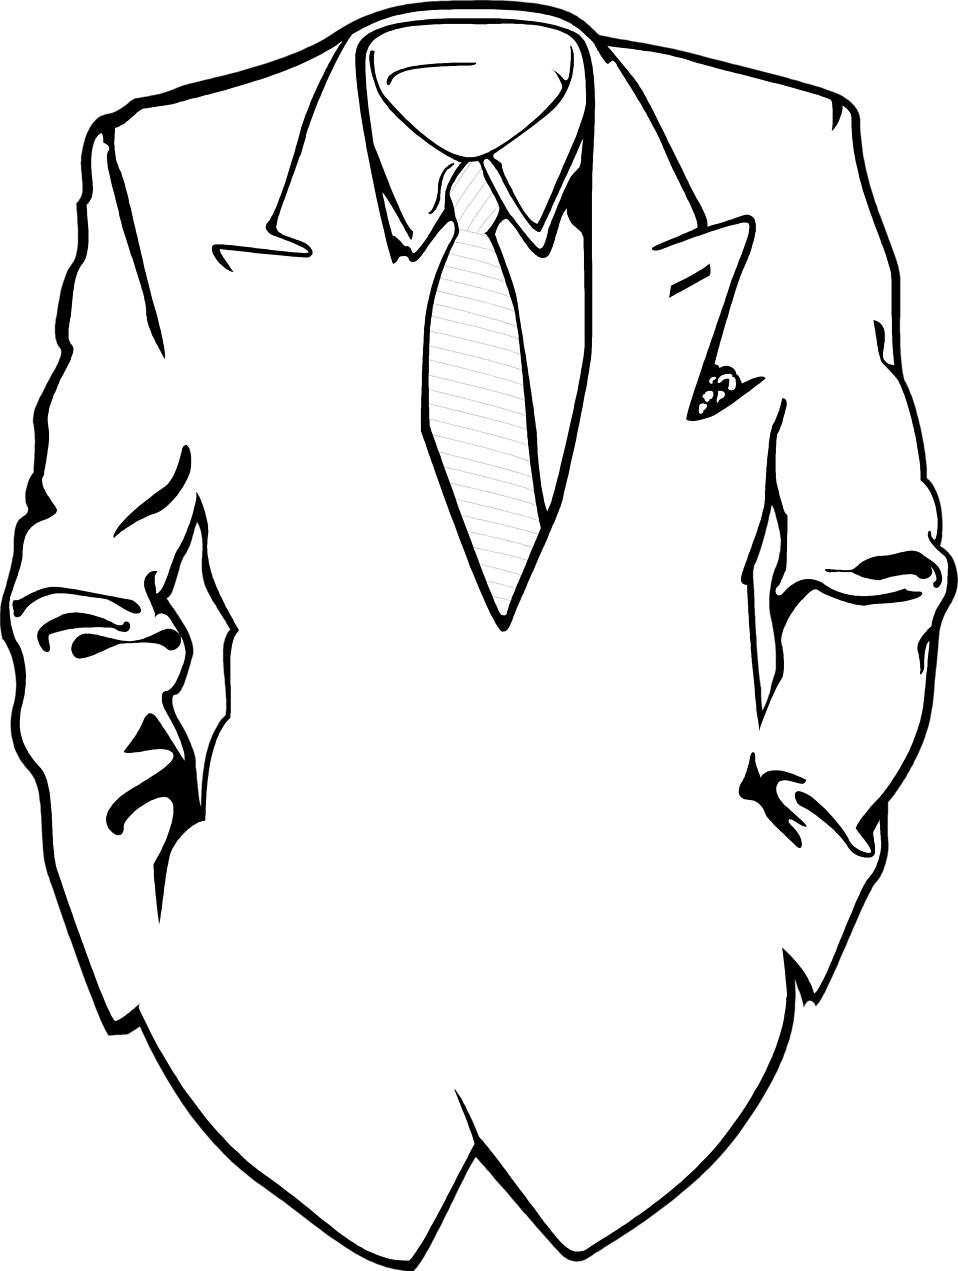 suit free stock photo illustration of a suit and tie